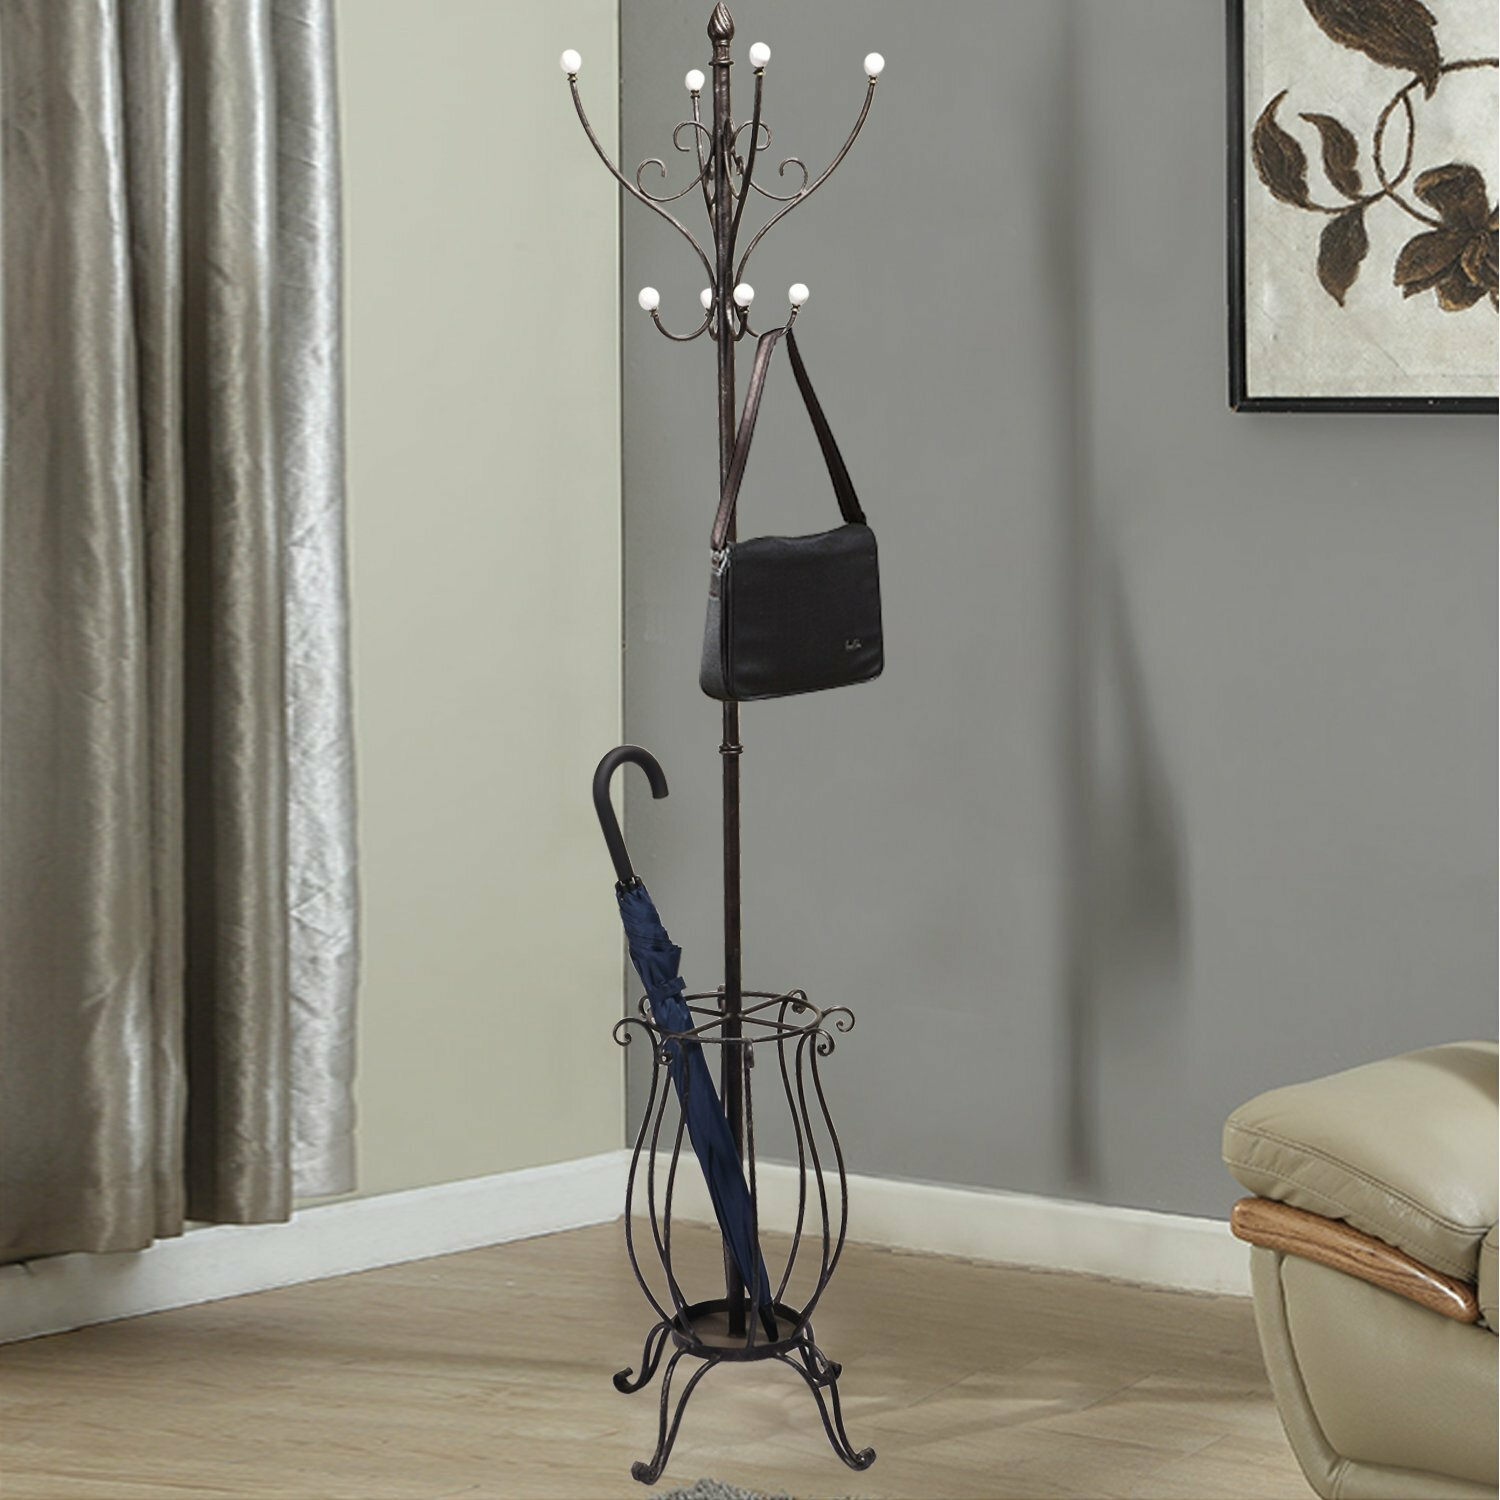 Adecotrading Iron Coat Hanging Rack With Umbrella Stand